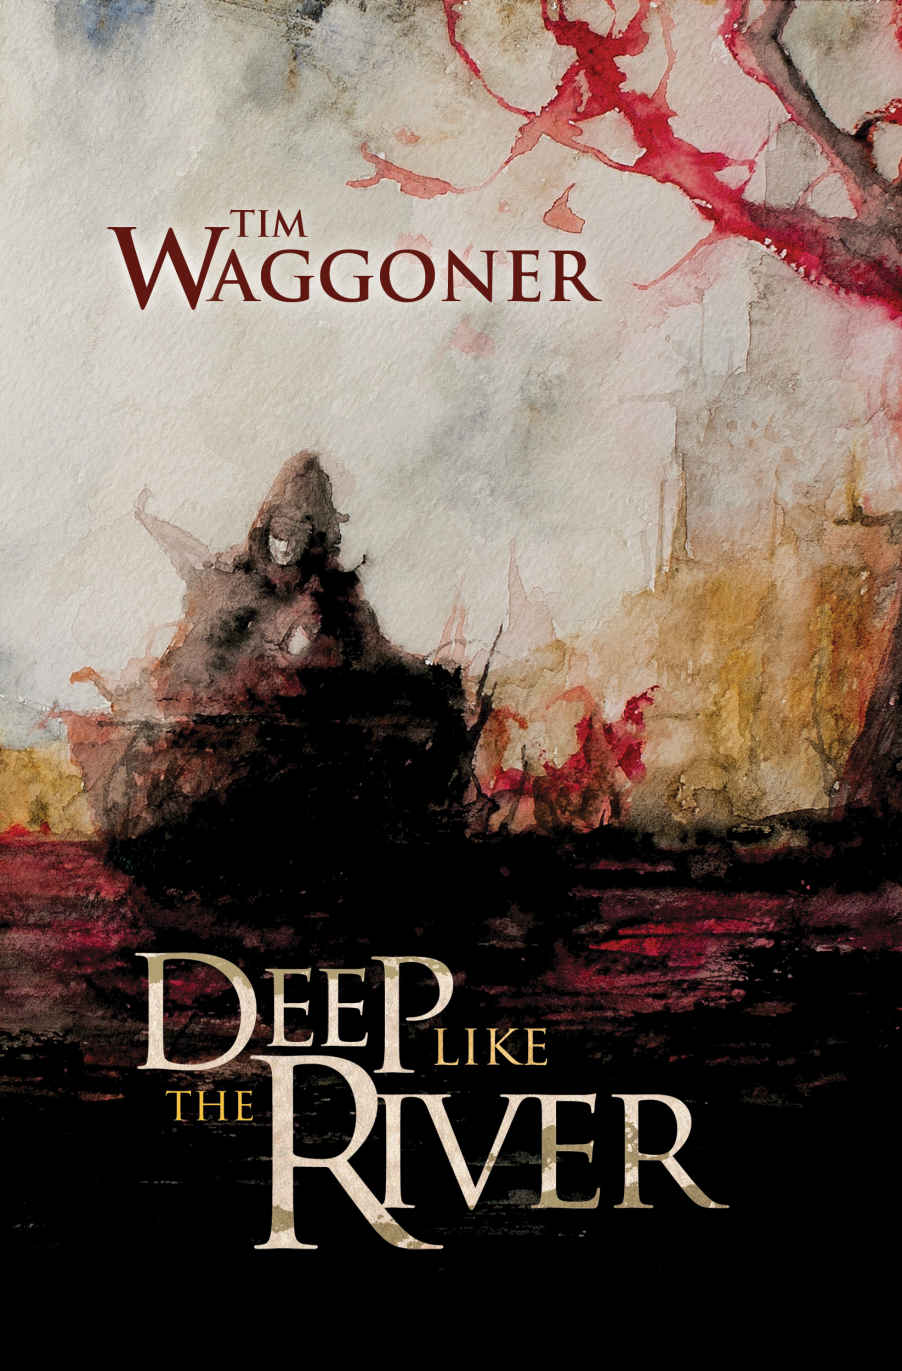 Deep Like The River by Tim Waggoner